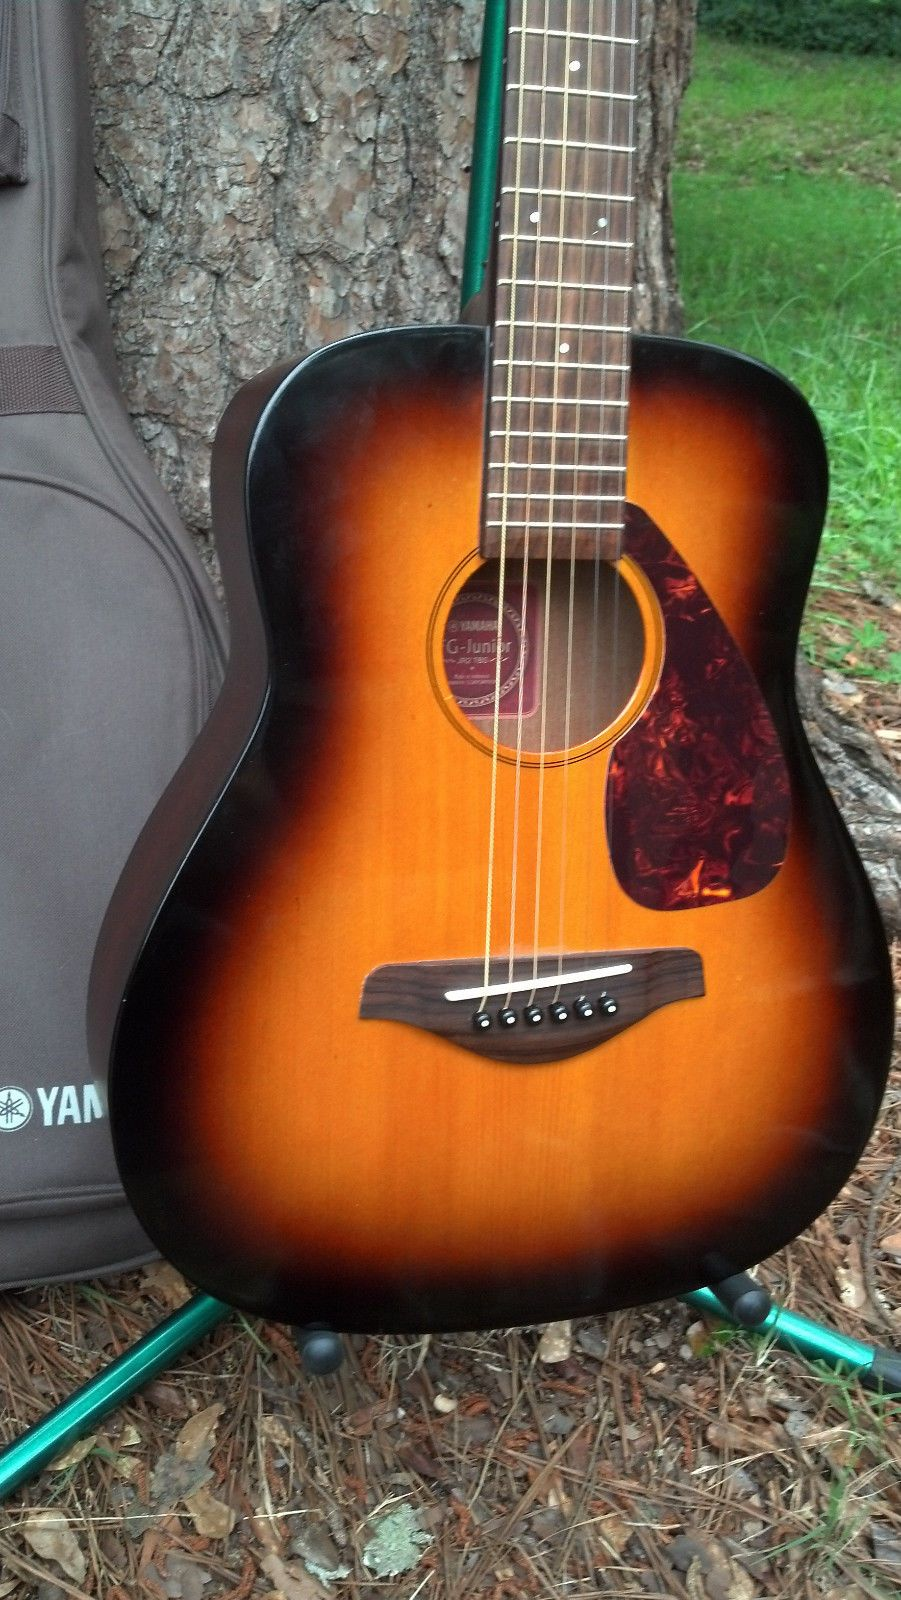 Guitar Yamaha Fg Junior Jr 2 Tbs 3 4 Size Acoustic Guitar W Bag Tobacco Sunburst Please Retweet Yamaha Fg Yamaha Acoustic Guitar Guitar